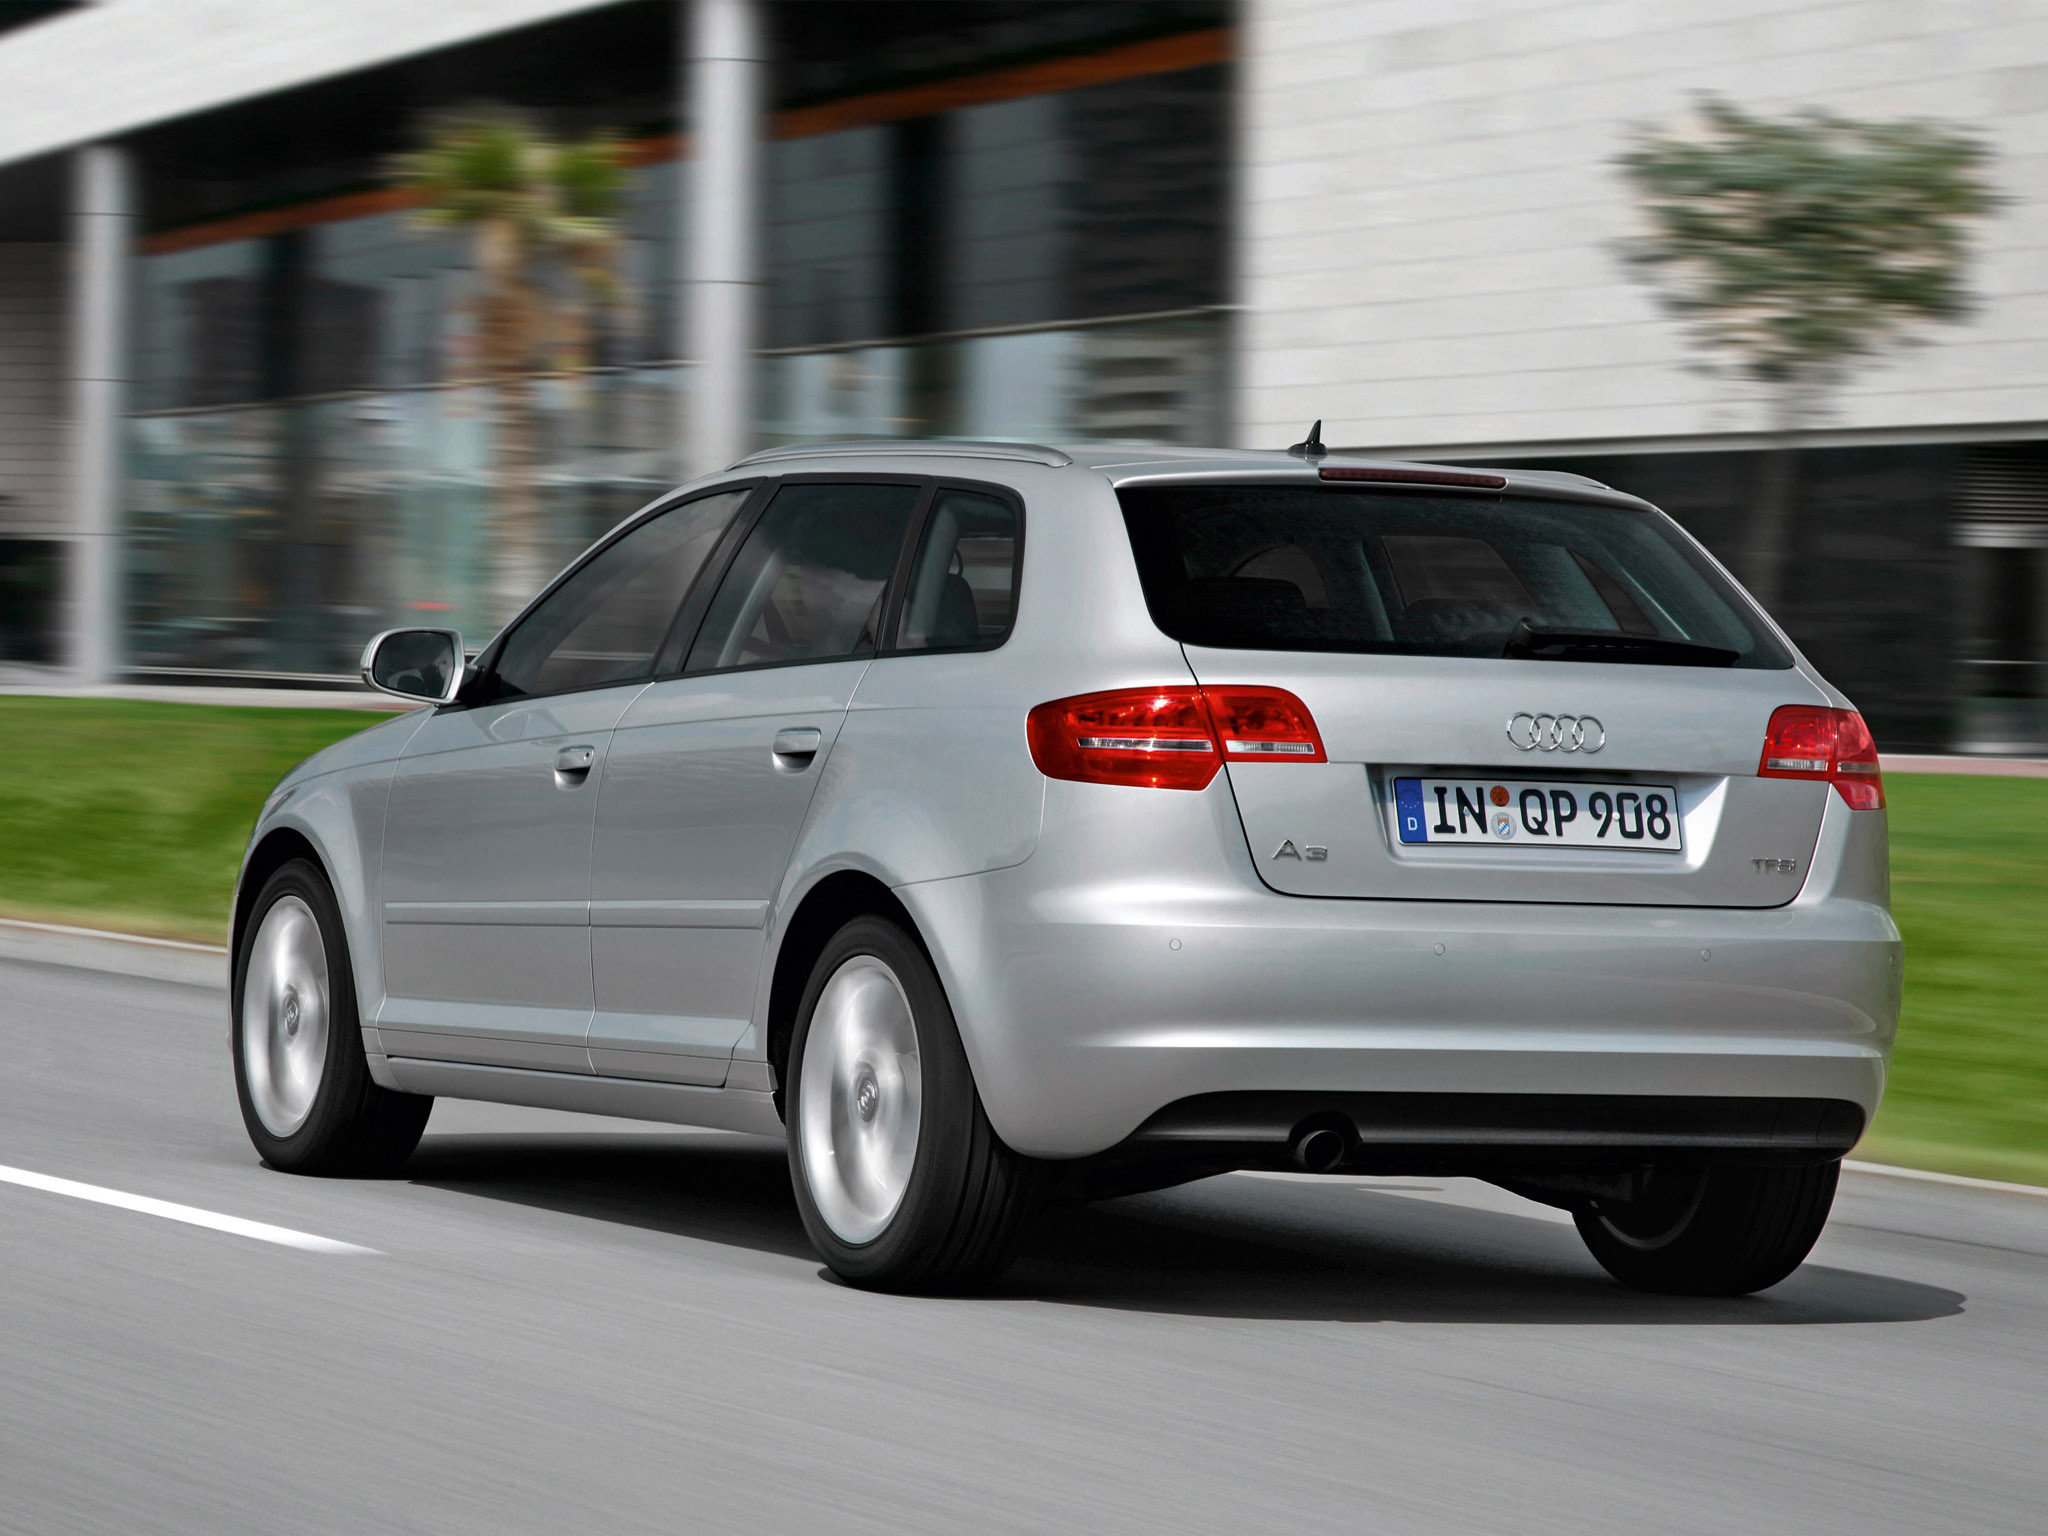 Car in pictures - car photo gallery » Audi A3 Sportback ...